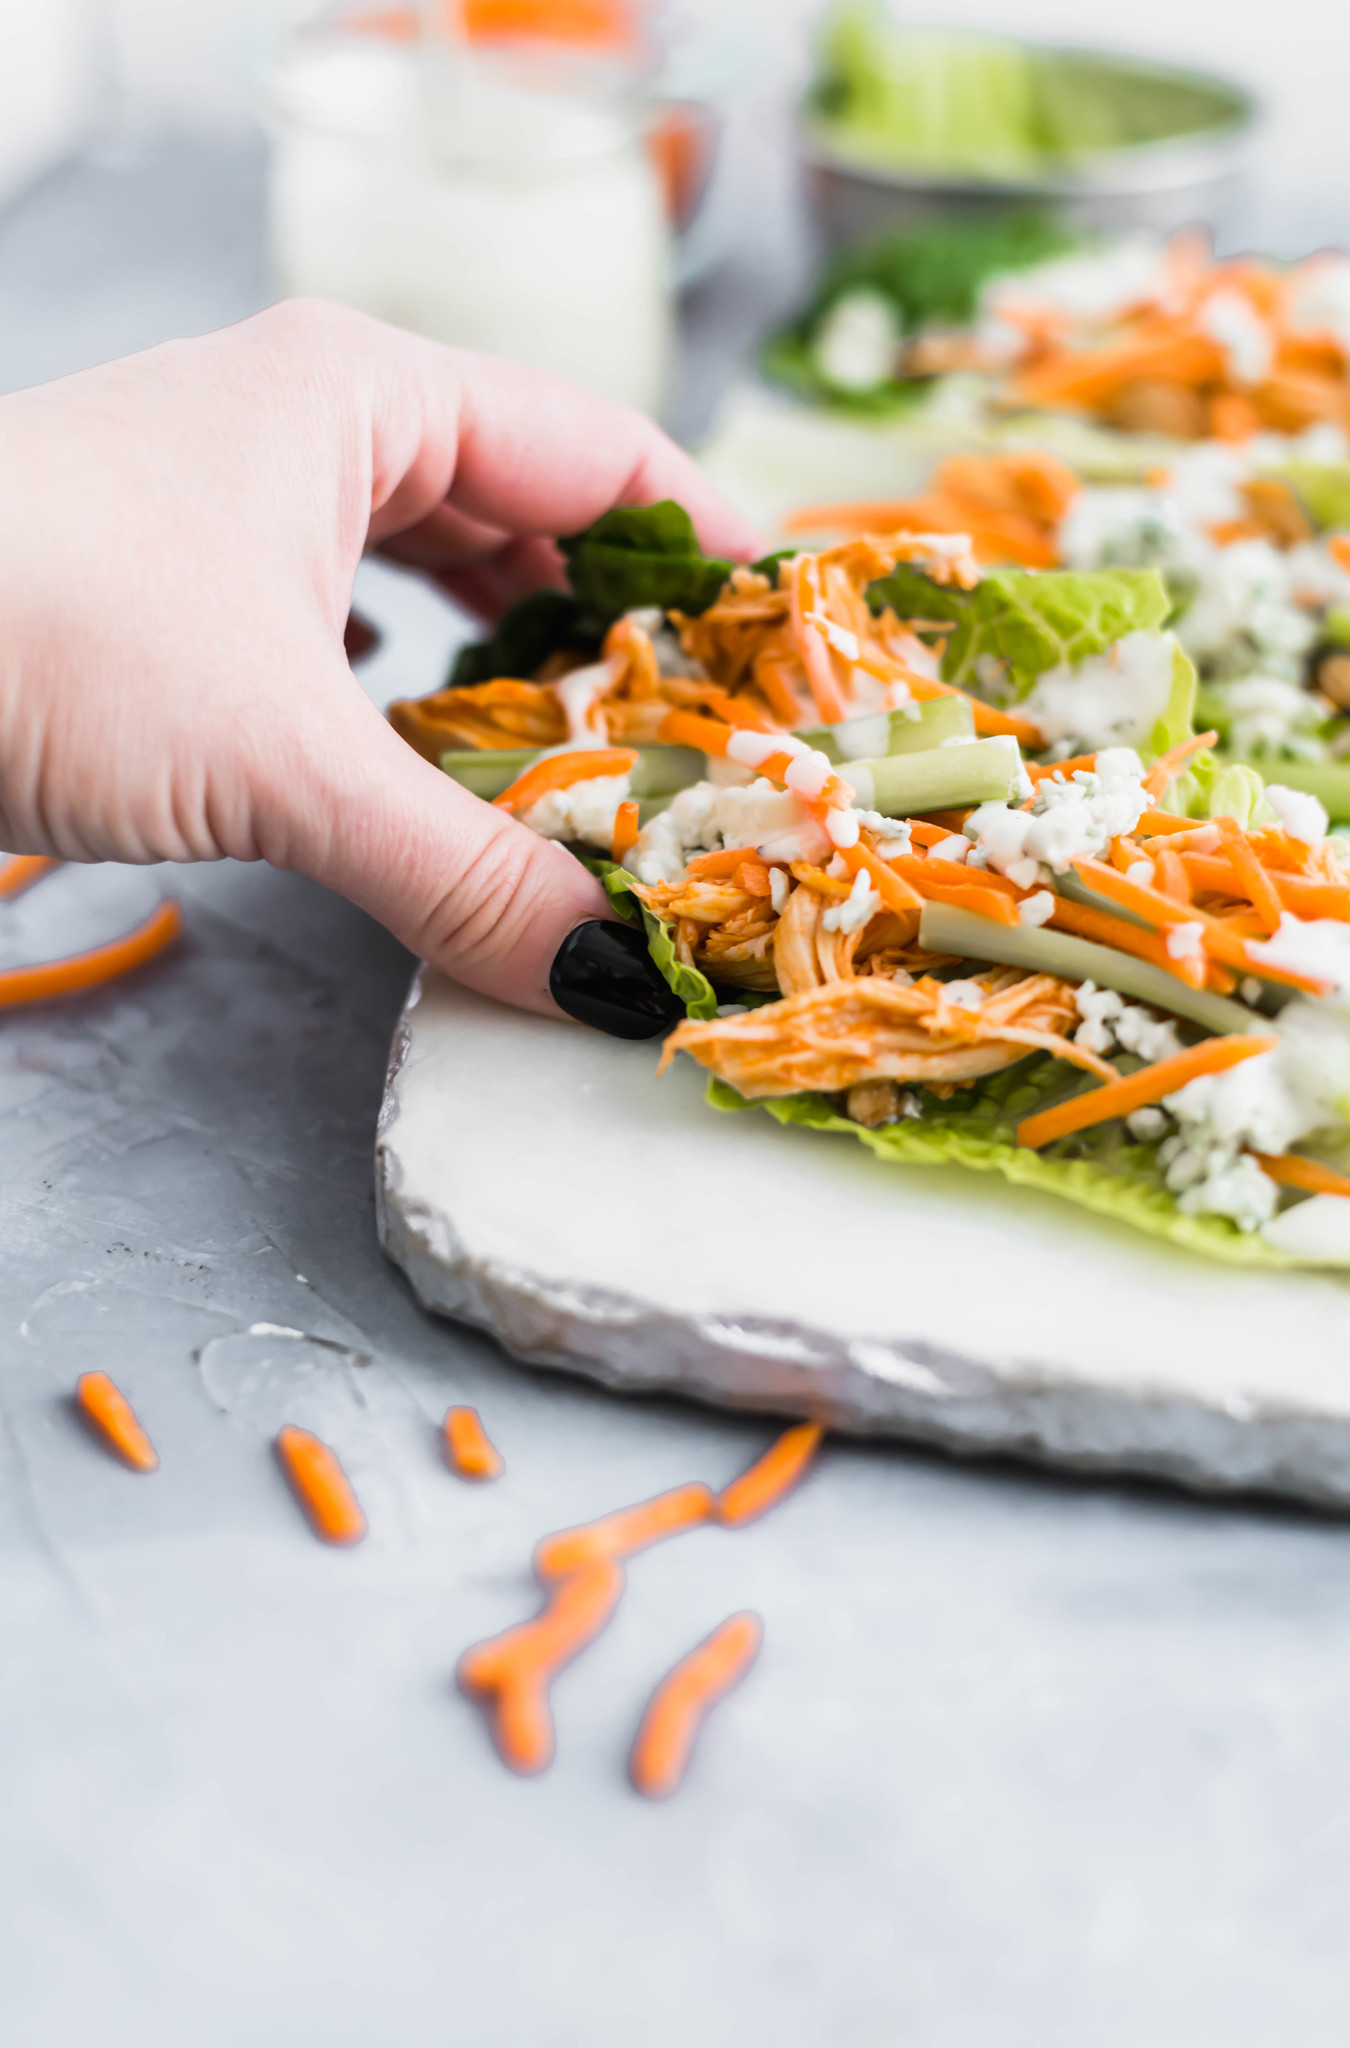 Buffalo Chicken Lettuce Wraps make for an easy, healthy and delicious meal. The buffalo chicken cooks in the slow cooker to make this super simple.